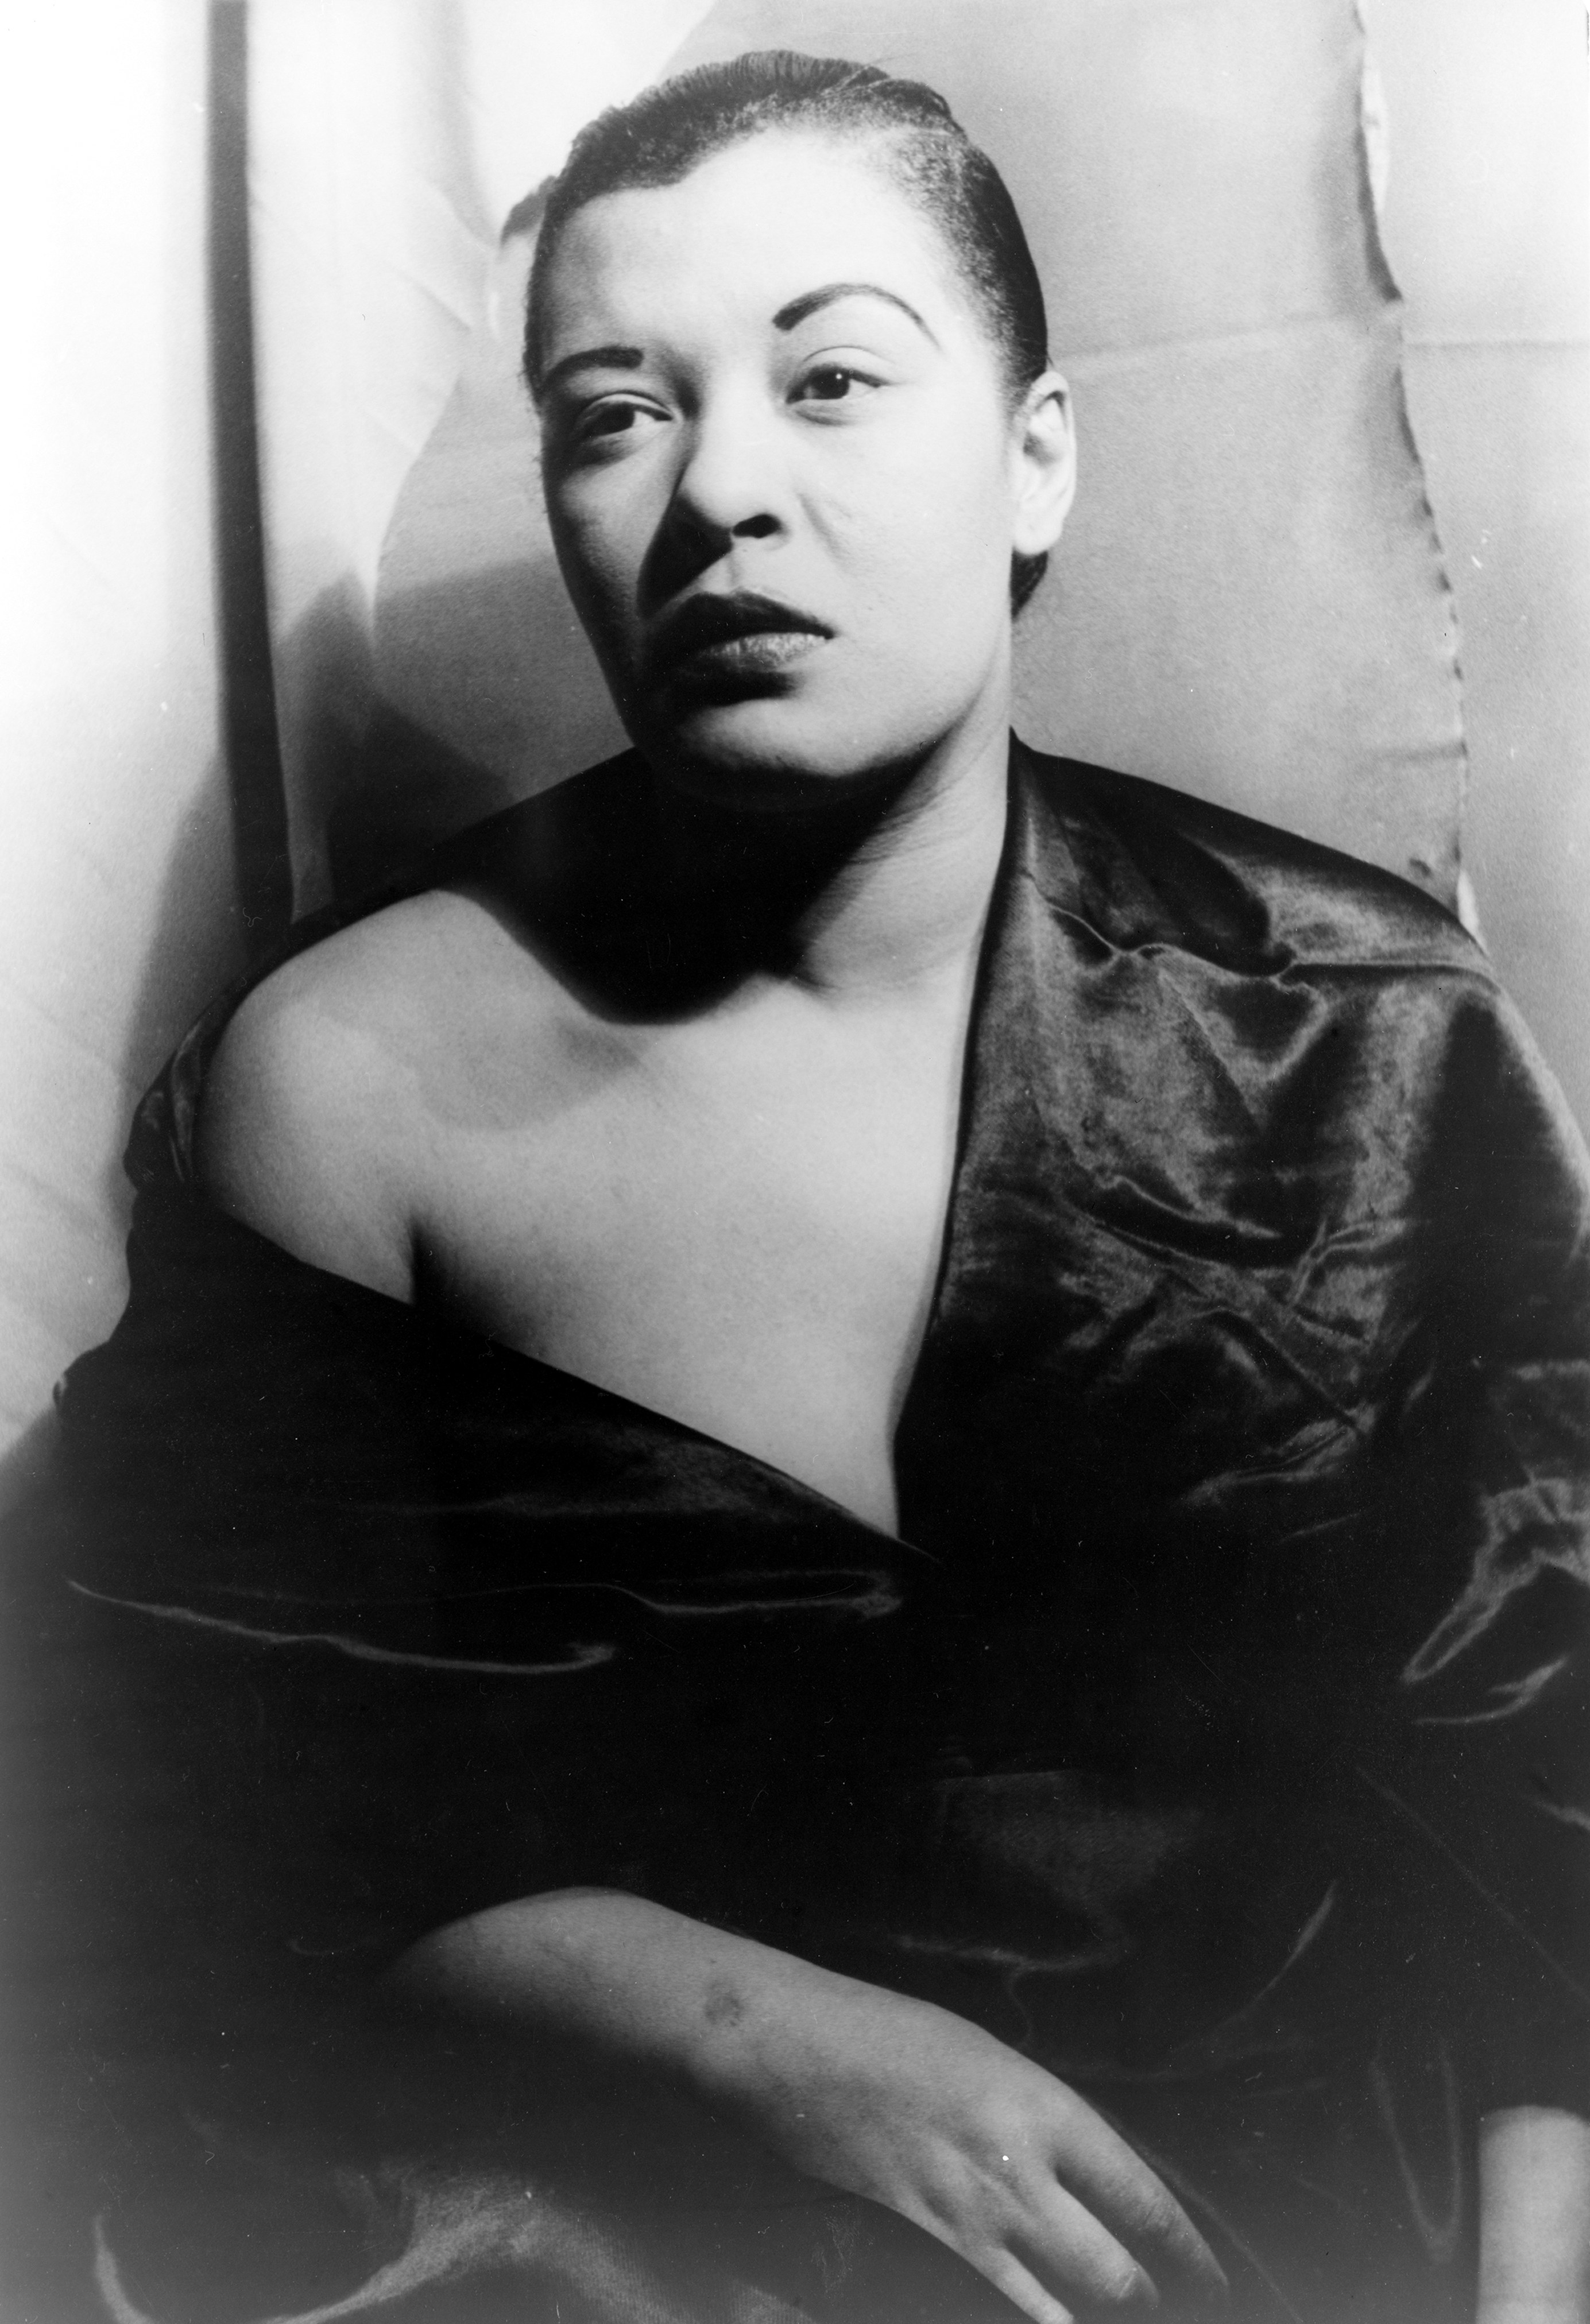 Portrait of Billie Holiday gazing away from the camera